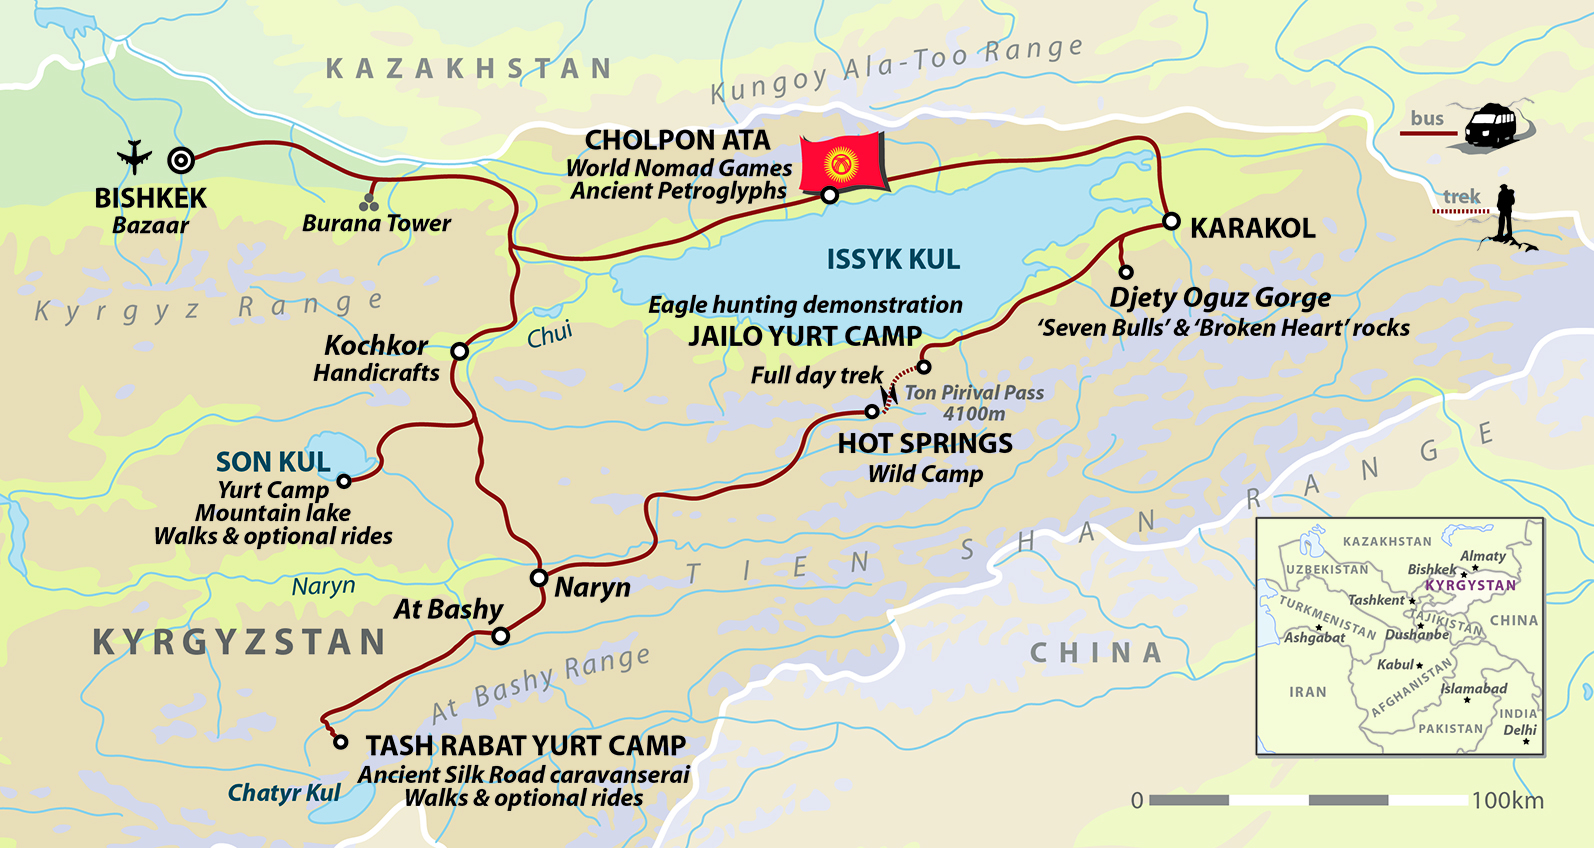 Kyrgyzstan tour world nomad games sep 2018 helping dreamers do map publicscrutiny Gallery